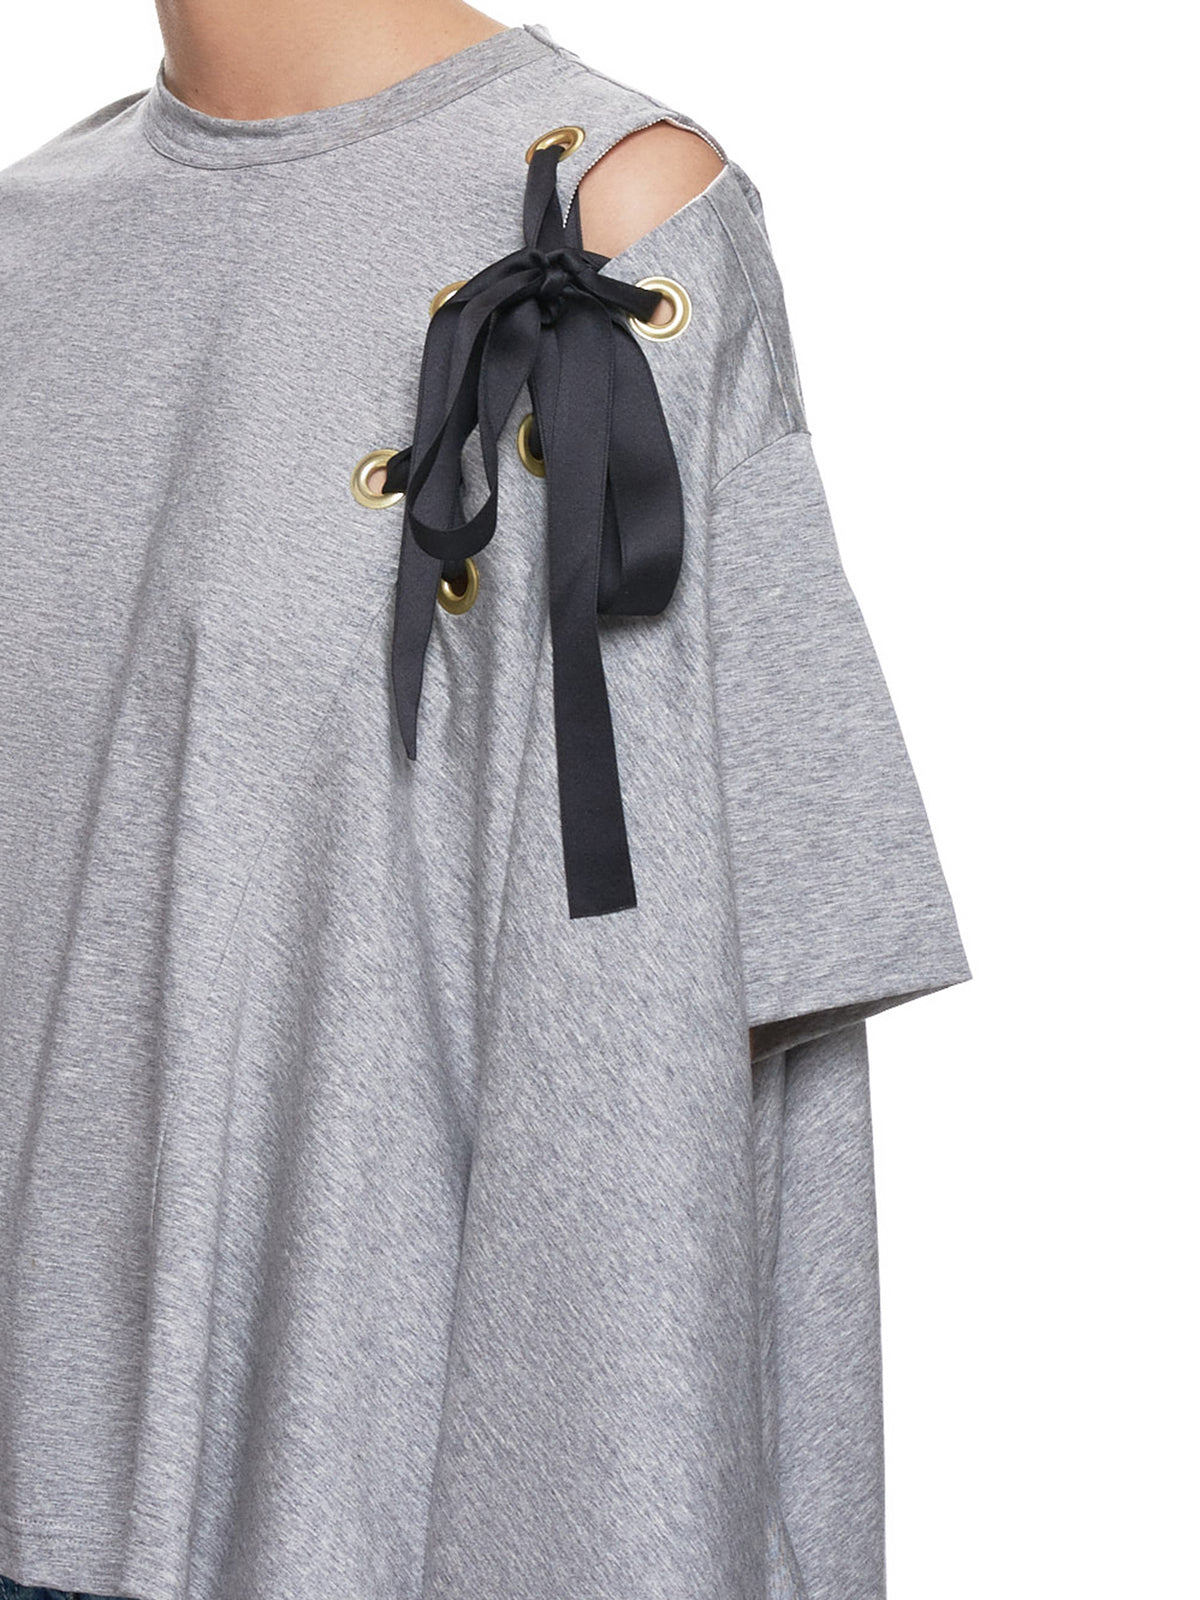 Asymmetrical Top (19-04498-LIGHT-GRAY)